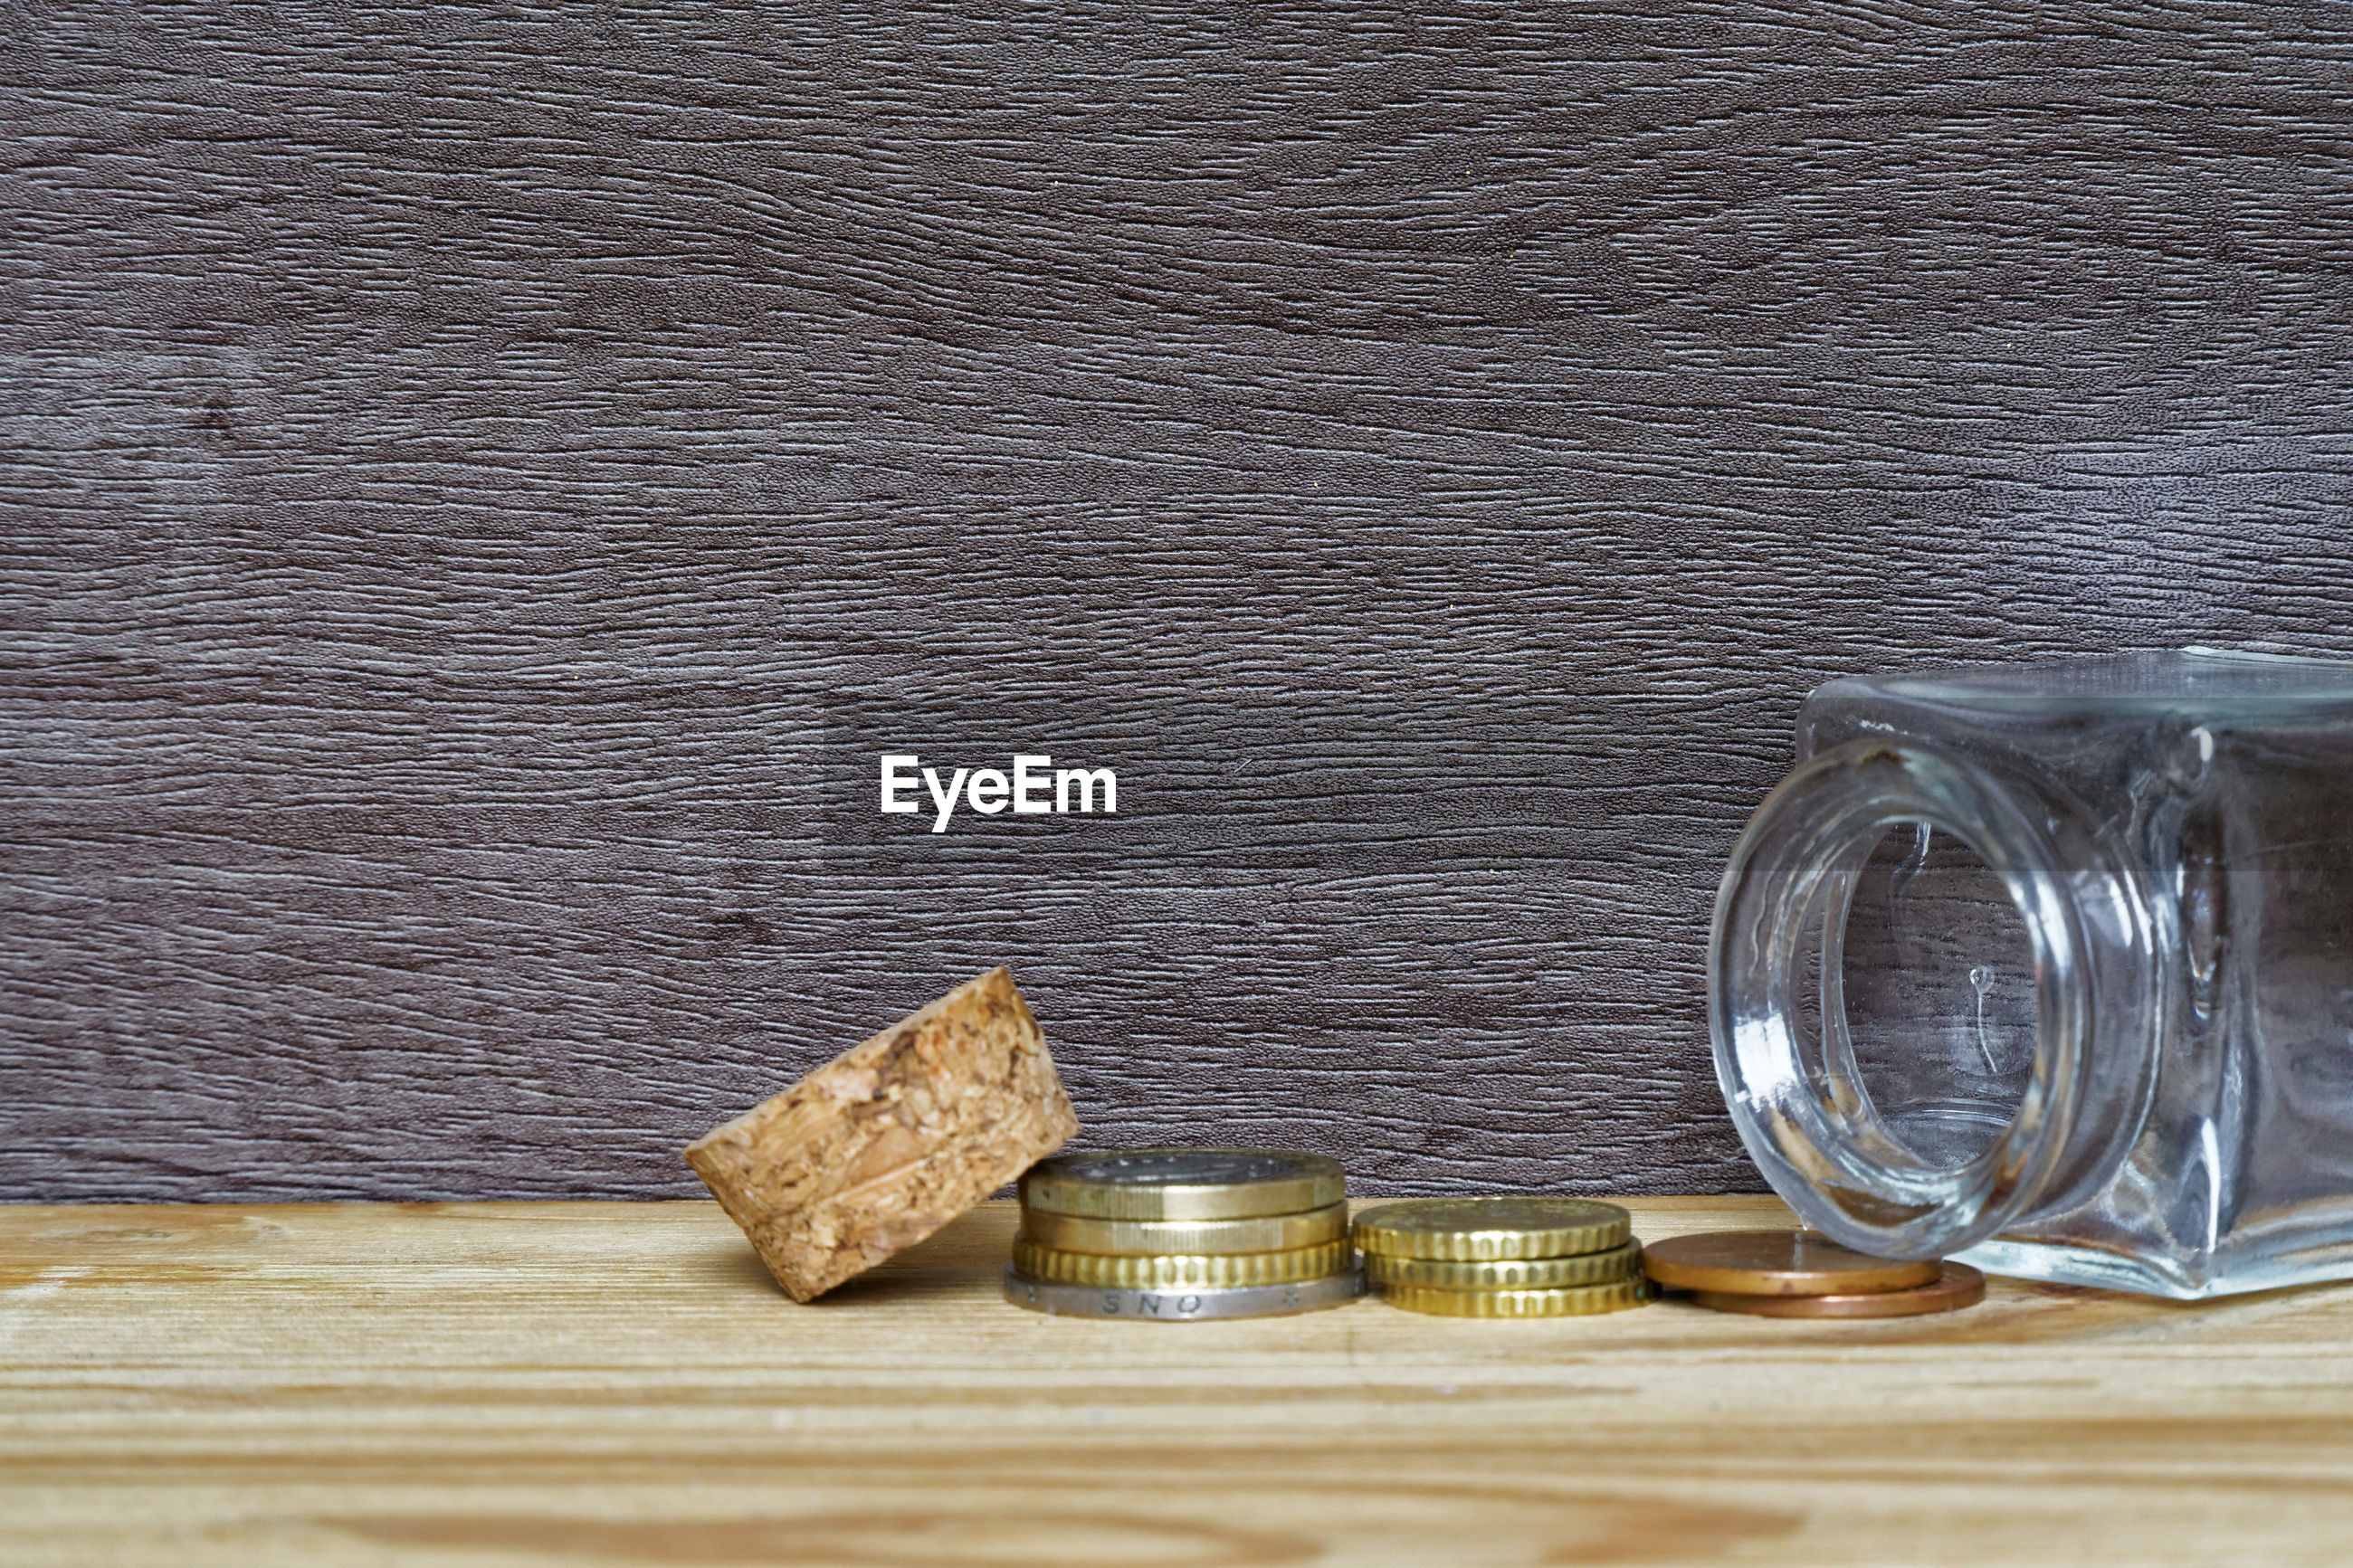 Close-up of coins by glass jar on table